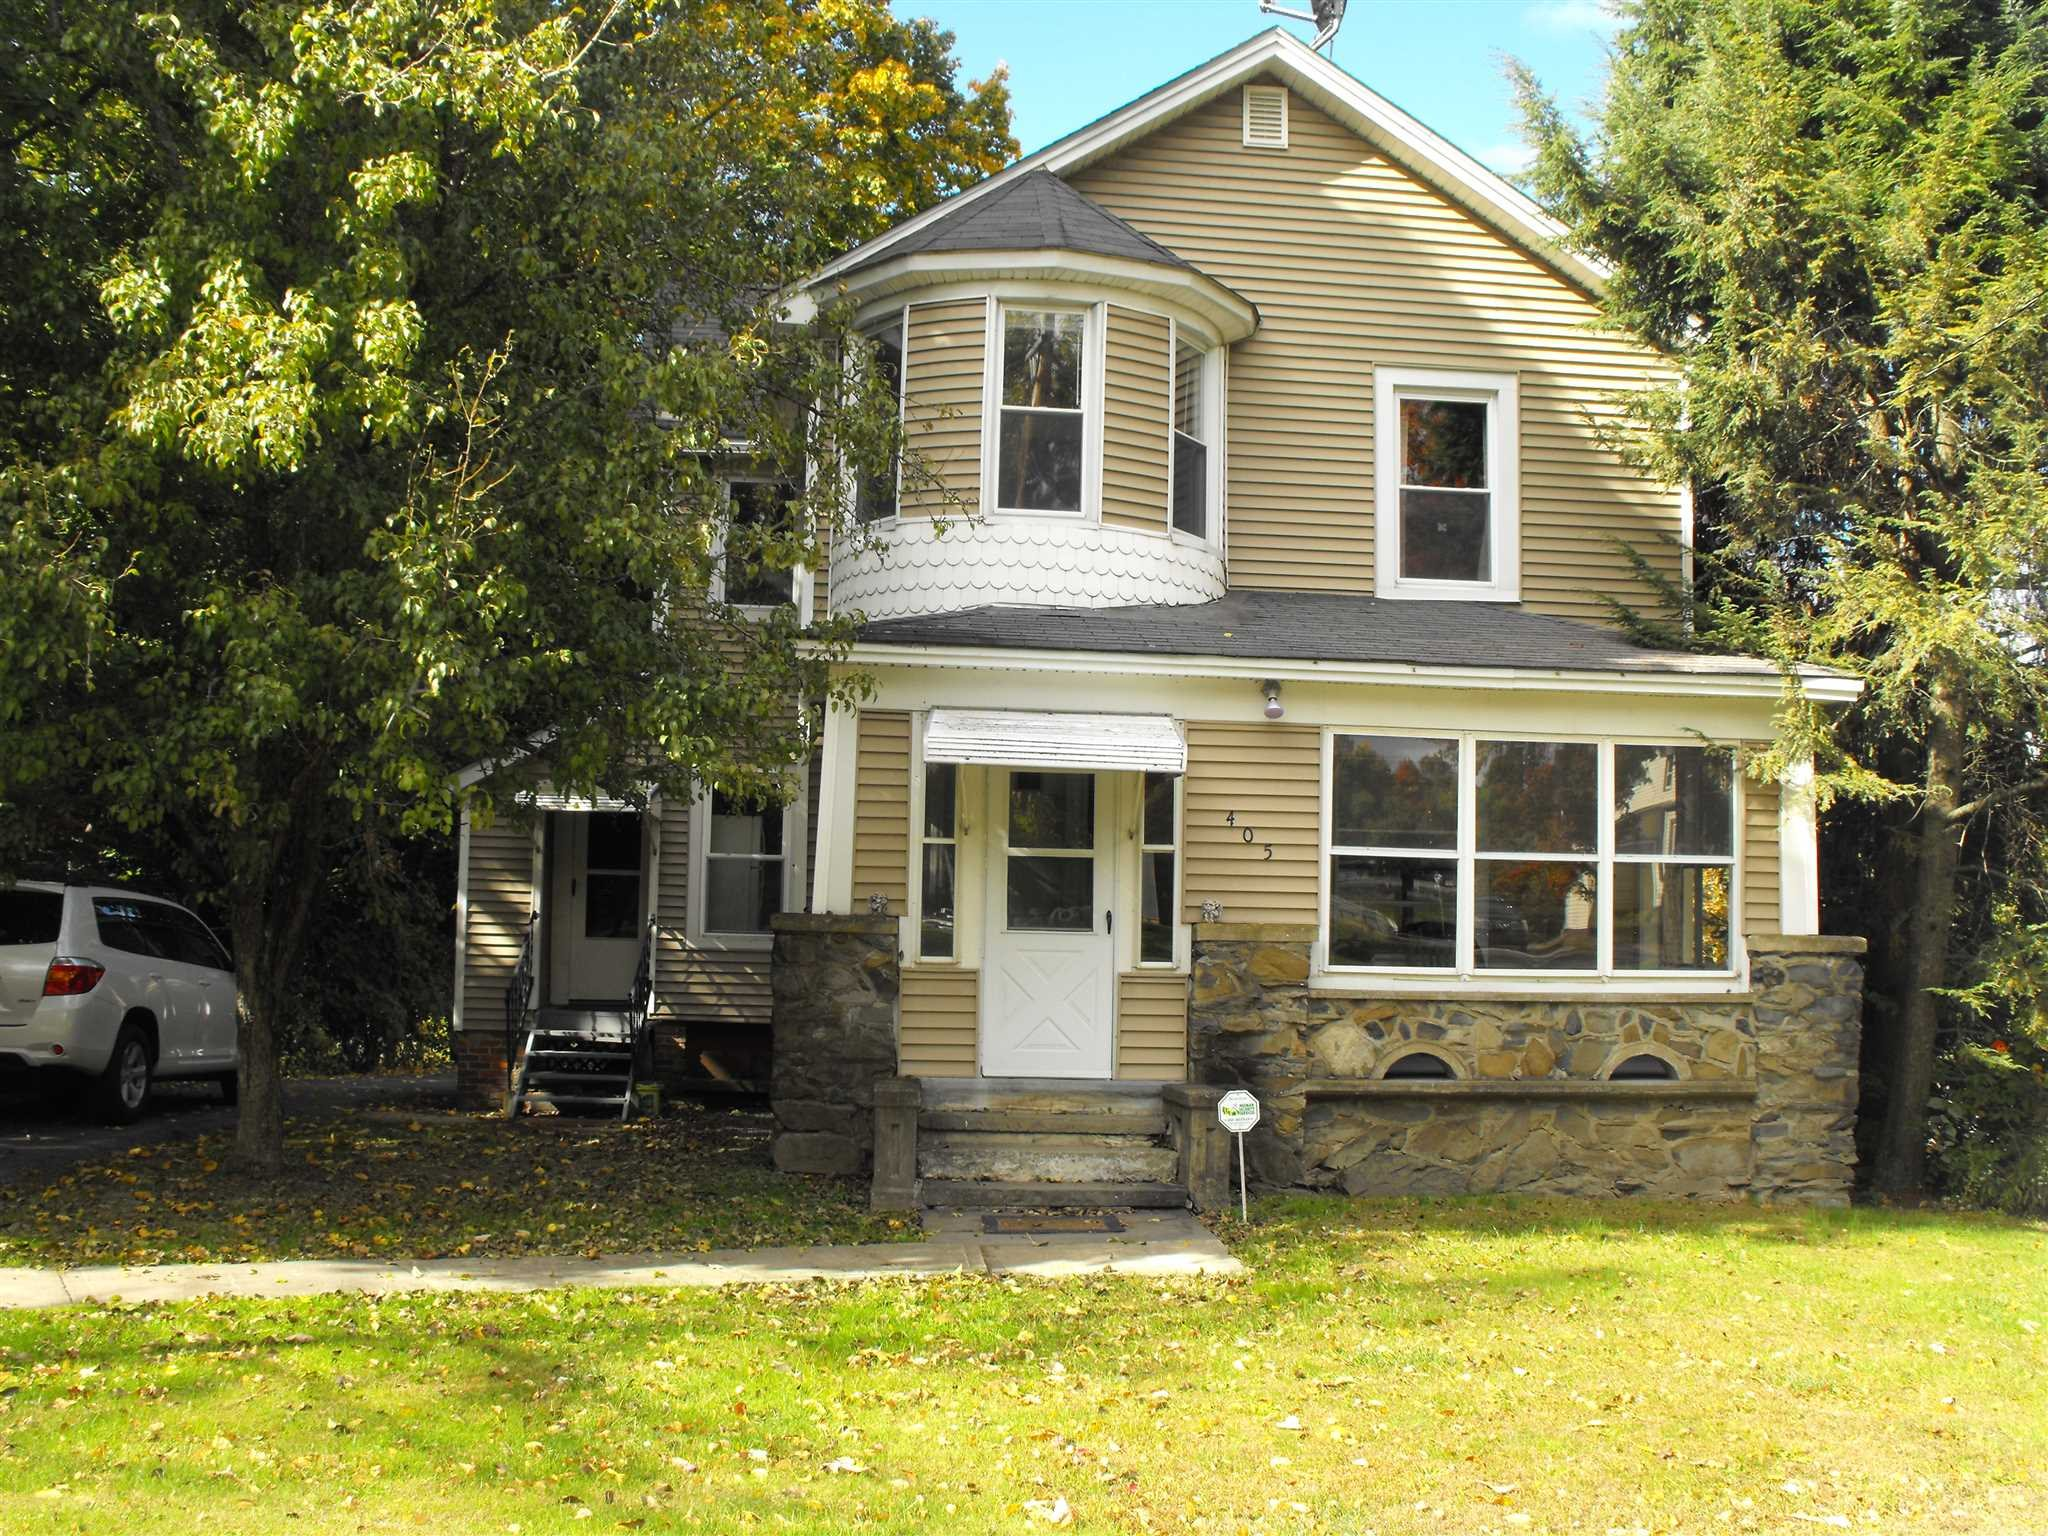 Single Family Home for Rent at 405 VIOLET Avenue 405 VIOLET Avenue Hyde Park, New York 12601 United States